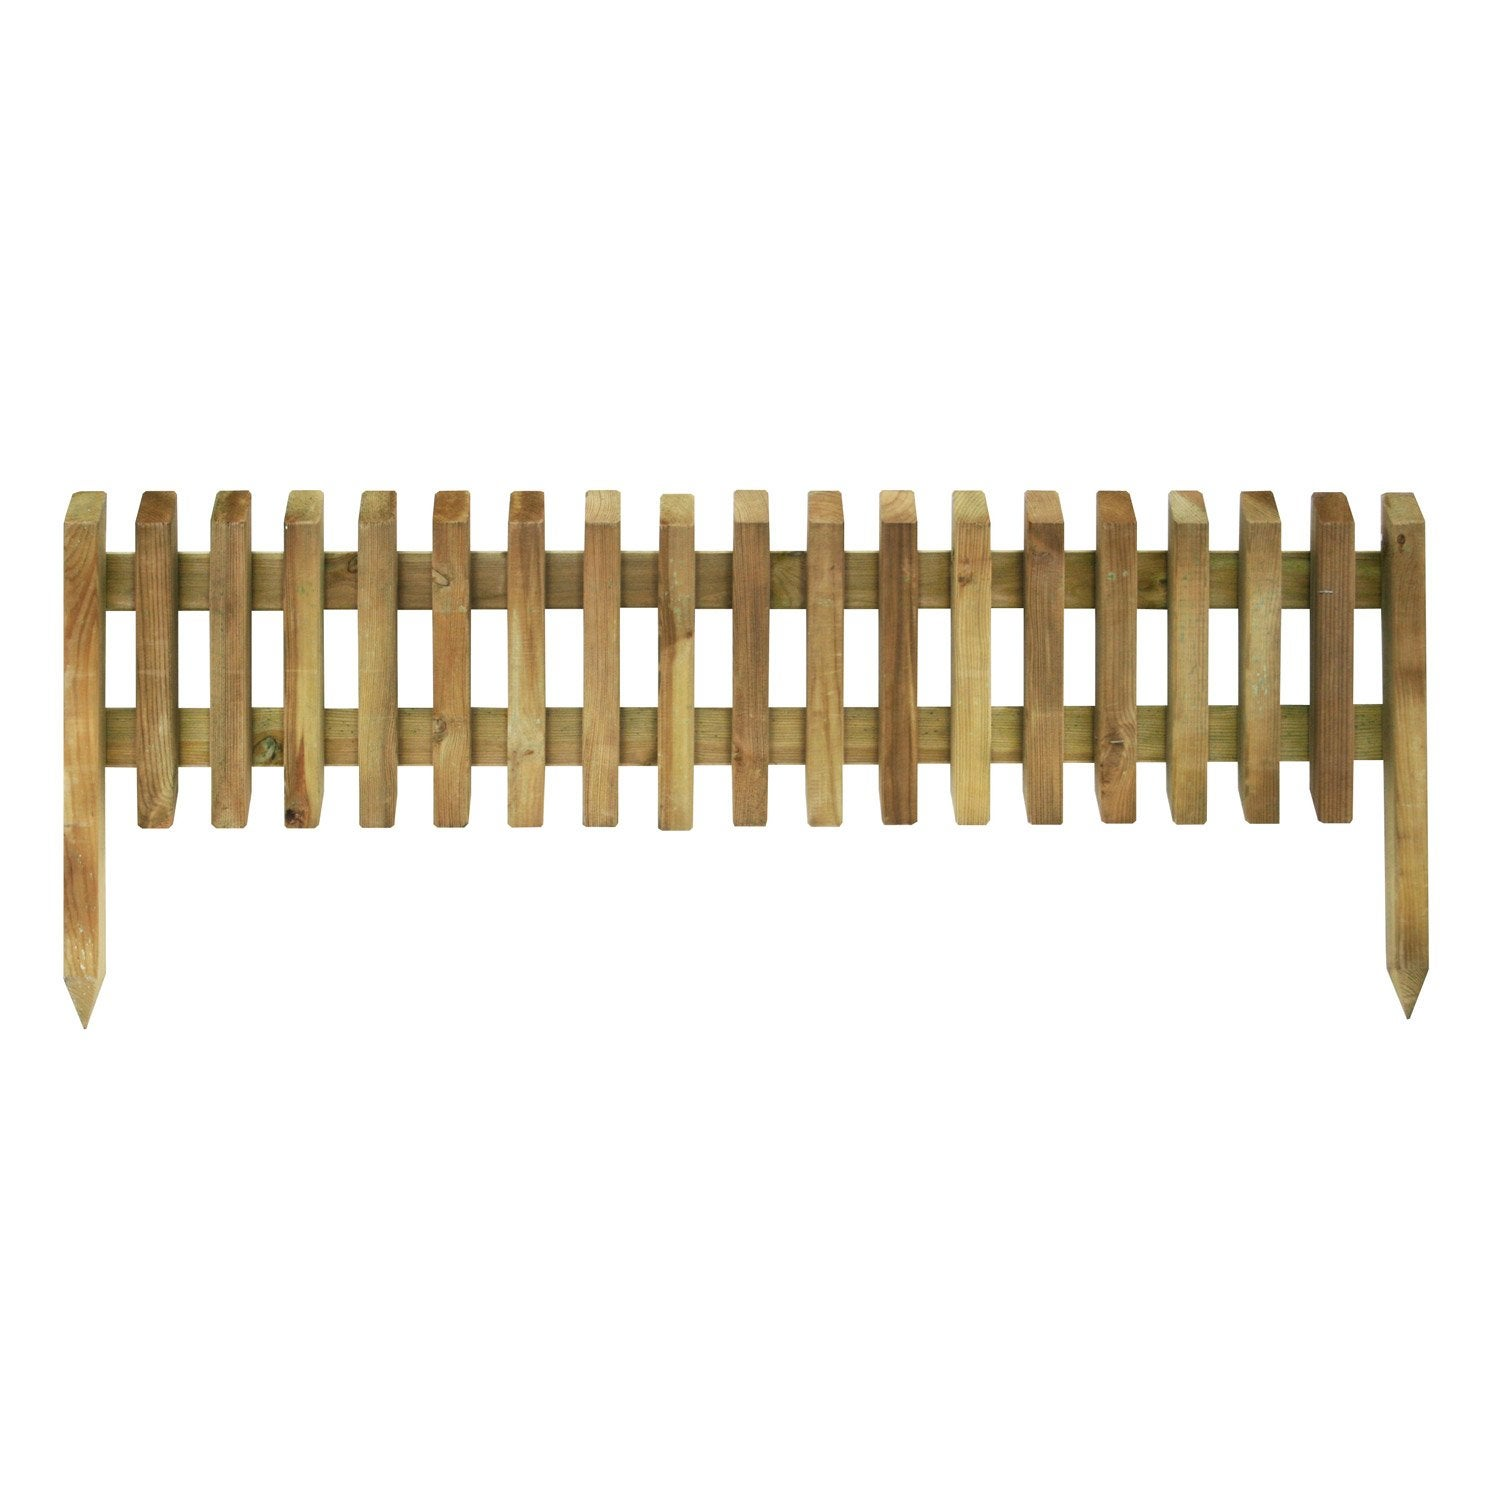 Bordure à planter Pikasso bois naturel, H.45 x L.112 cm | Leroy Merlin